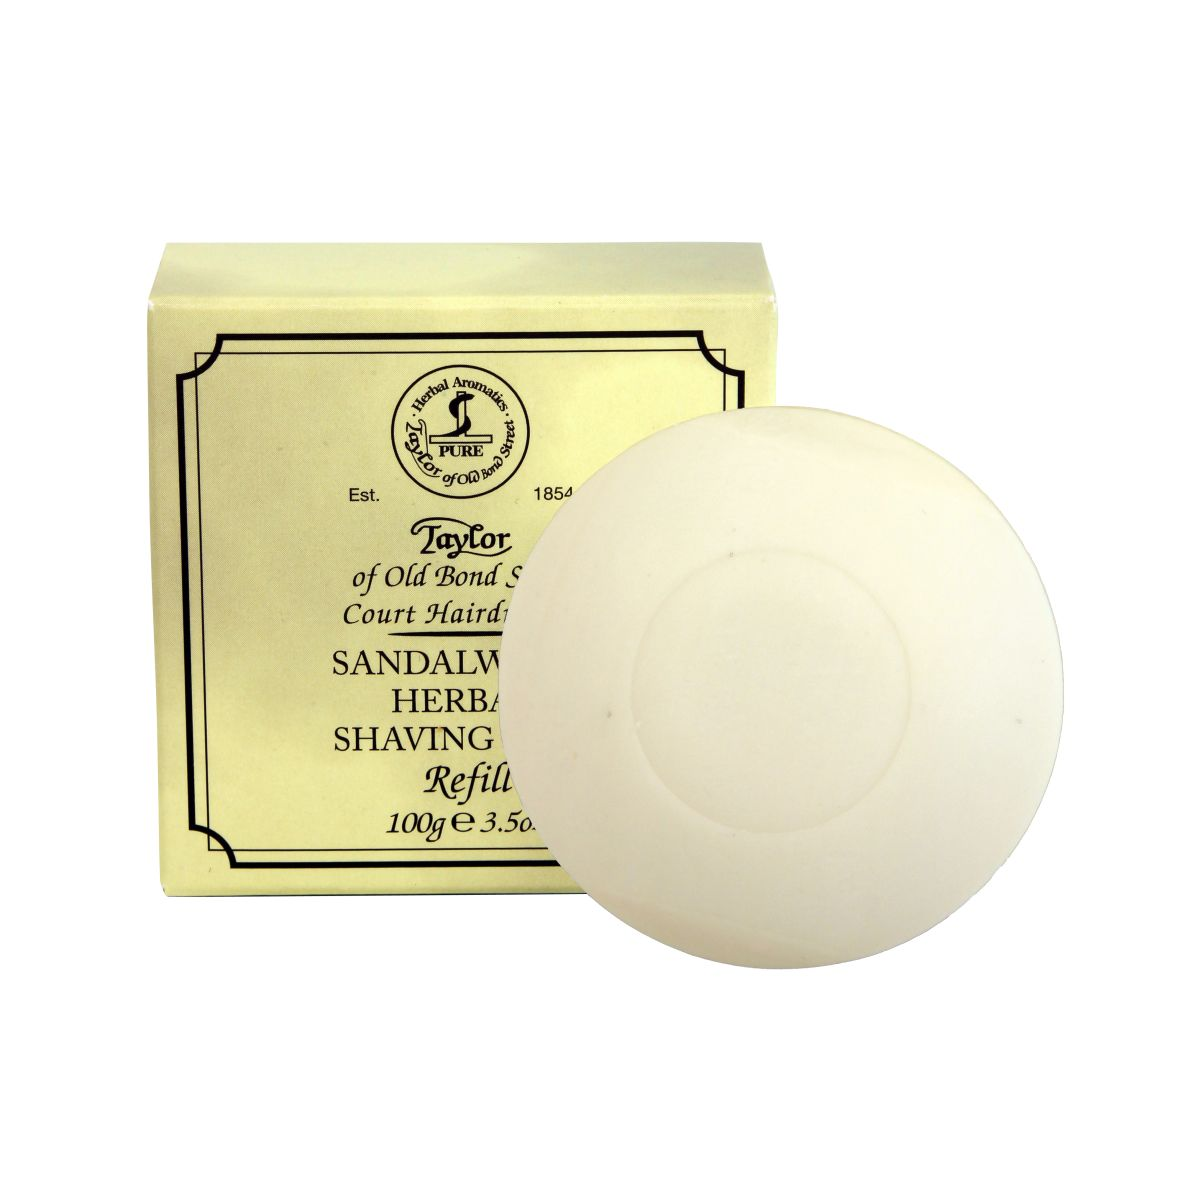 01051 New 2015 - Taylor Of Old Bond Street Sandalwood Soap Refill - 01051